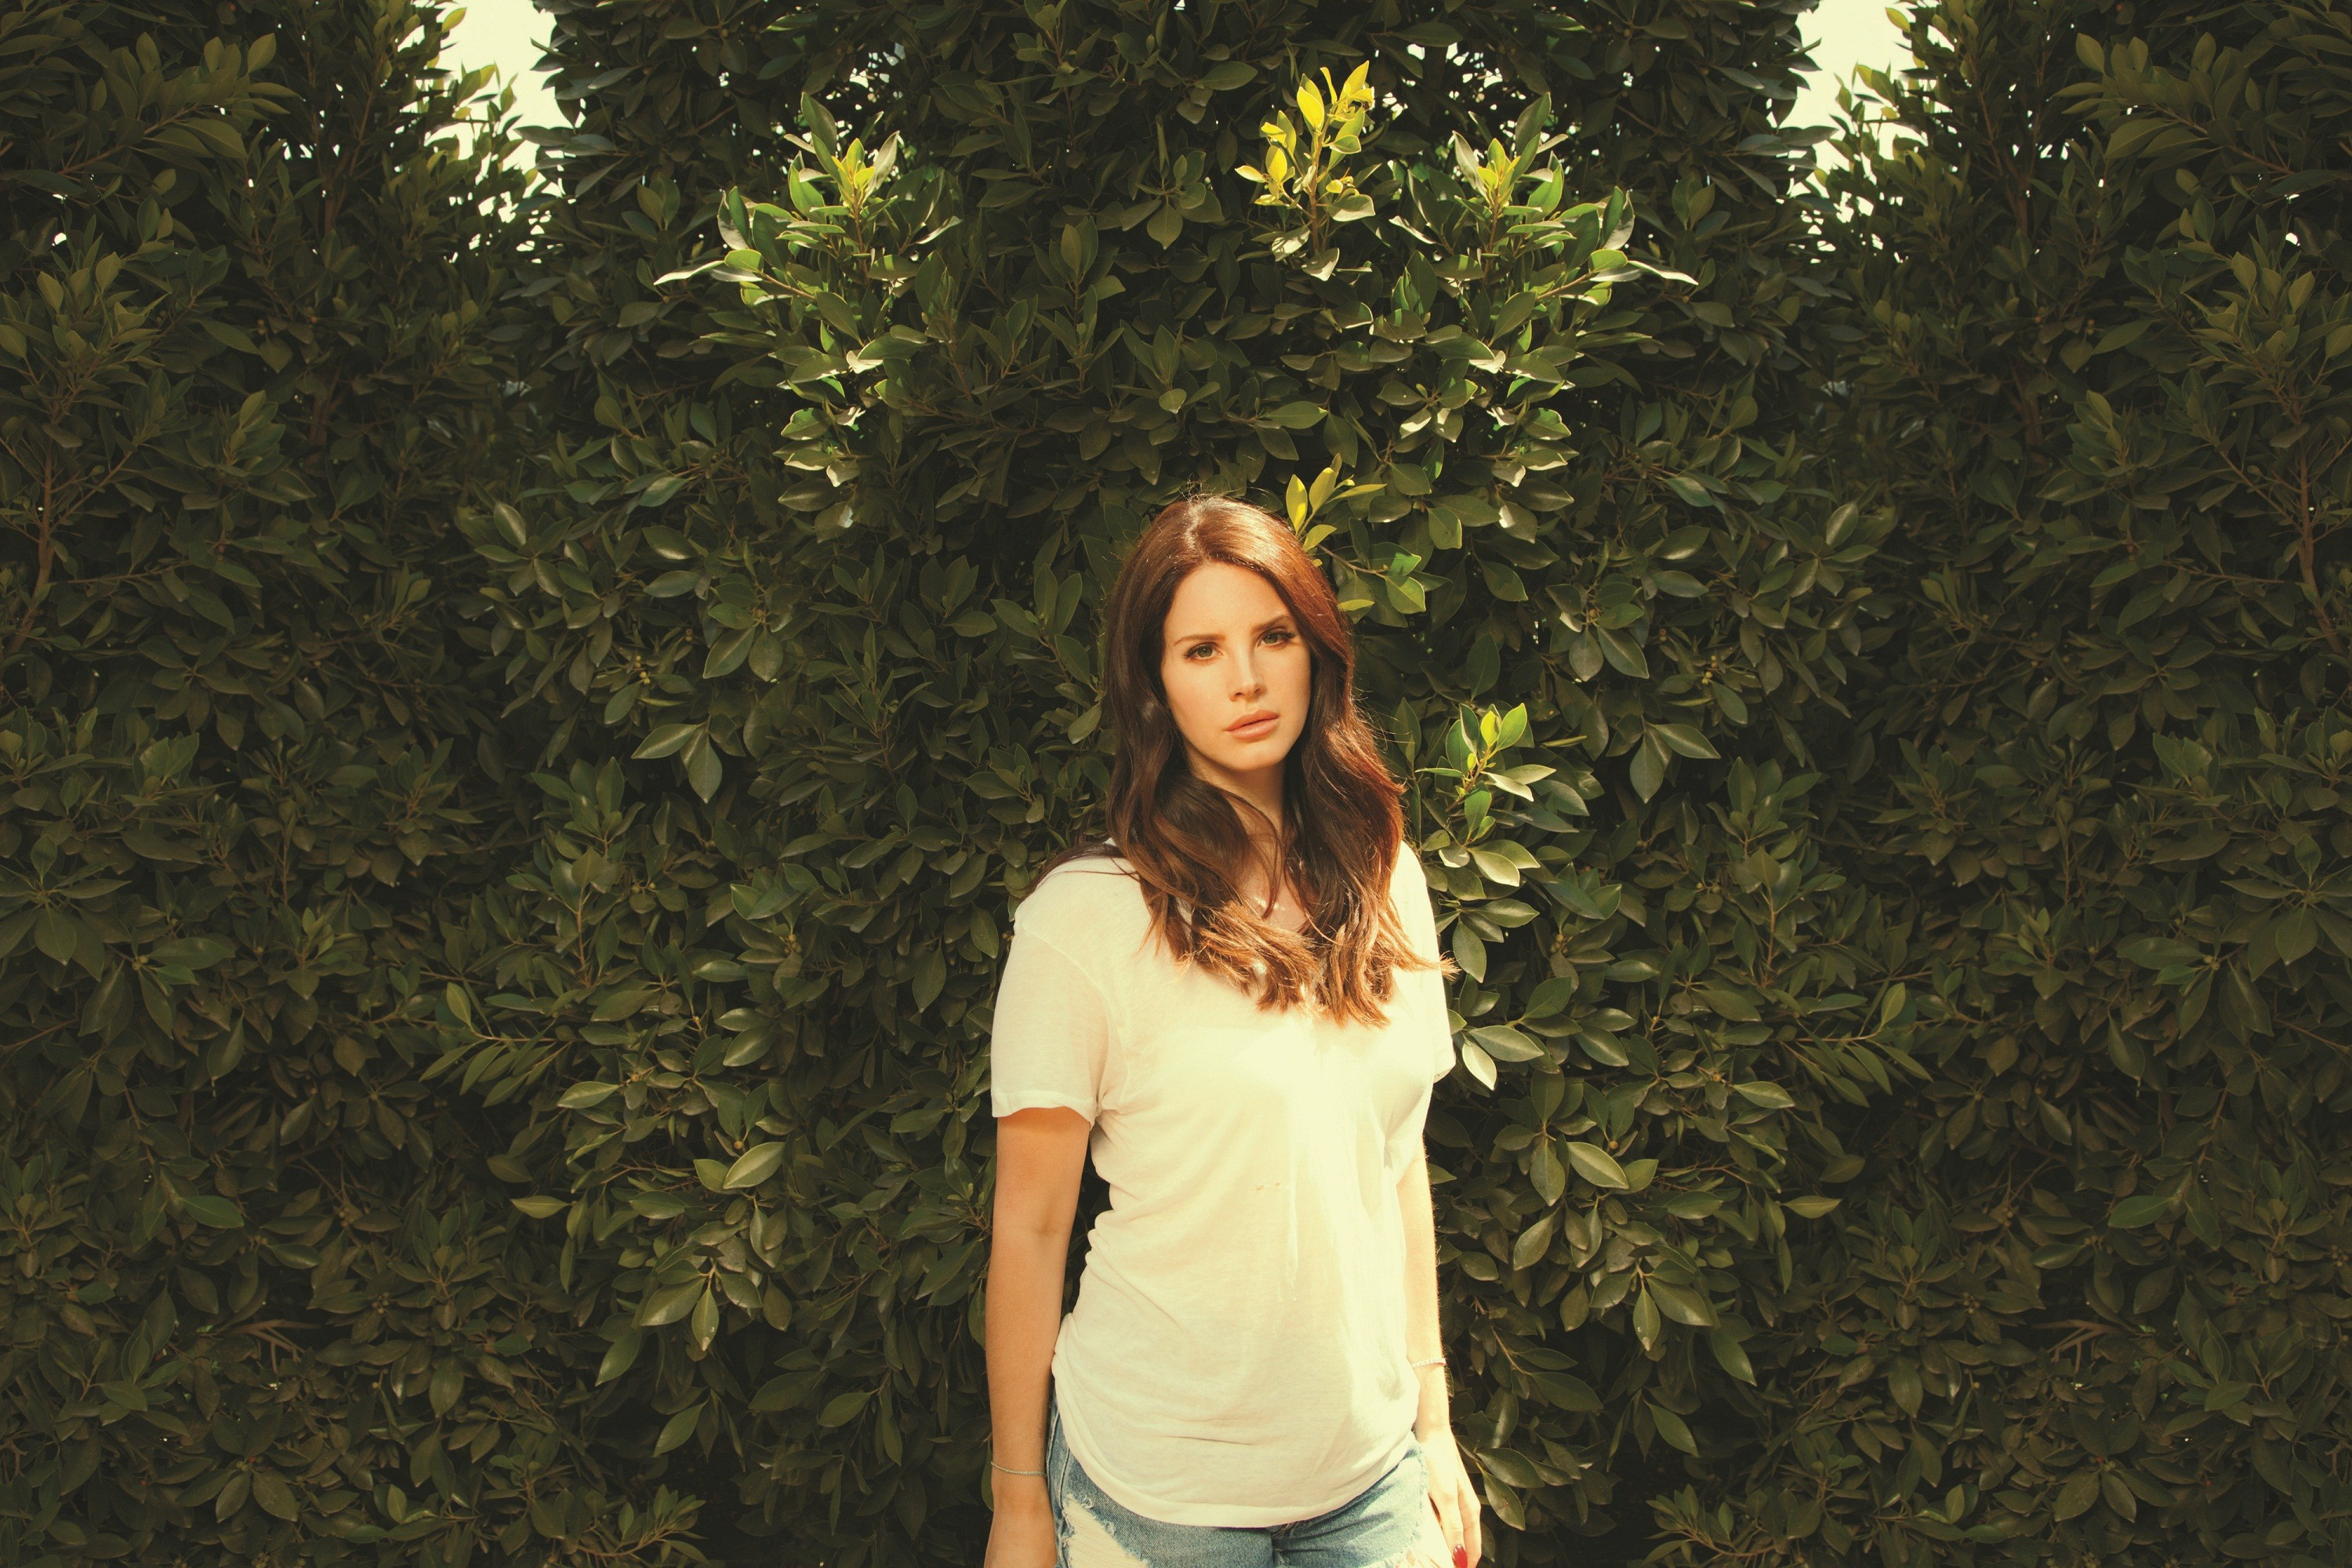 2015 Lana Del Rey North American Tour Dates with very special guest Courtney Love